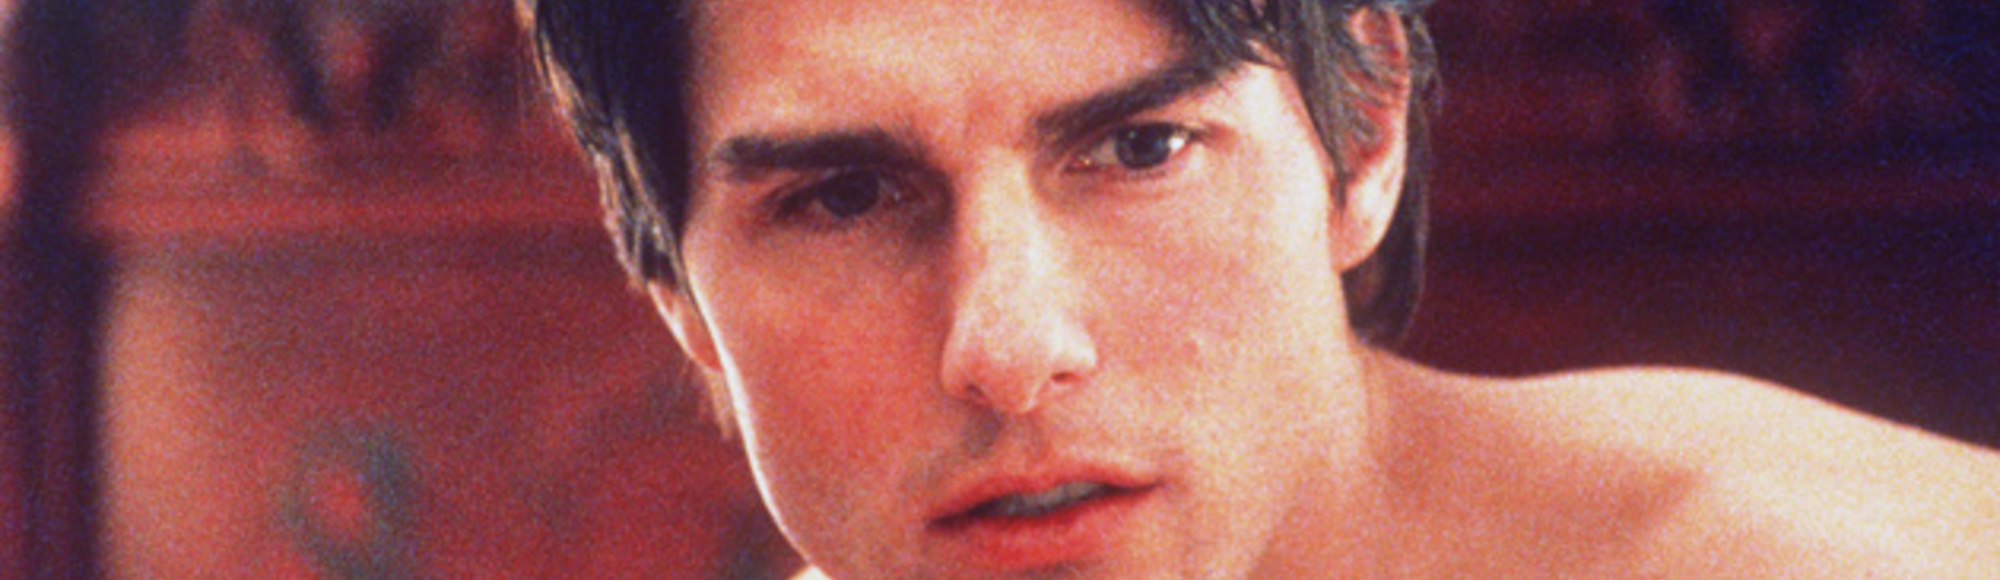 Why Can't Anybody Love Tom Cruise?